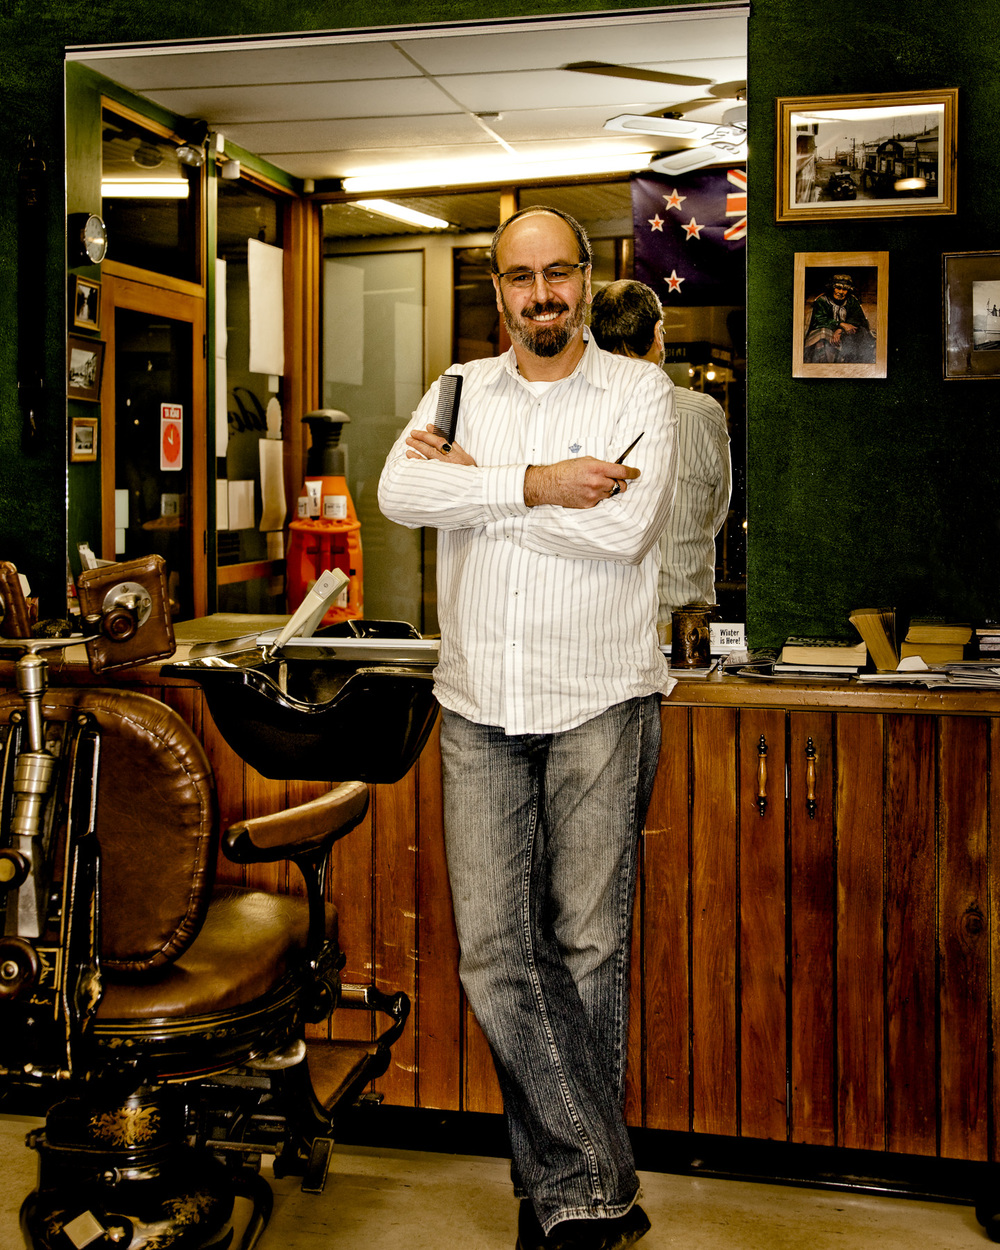 Business Portrait at Barber